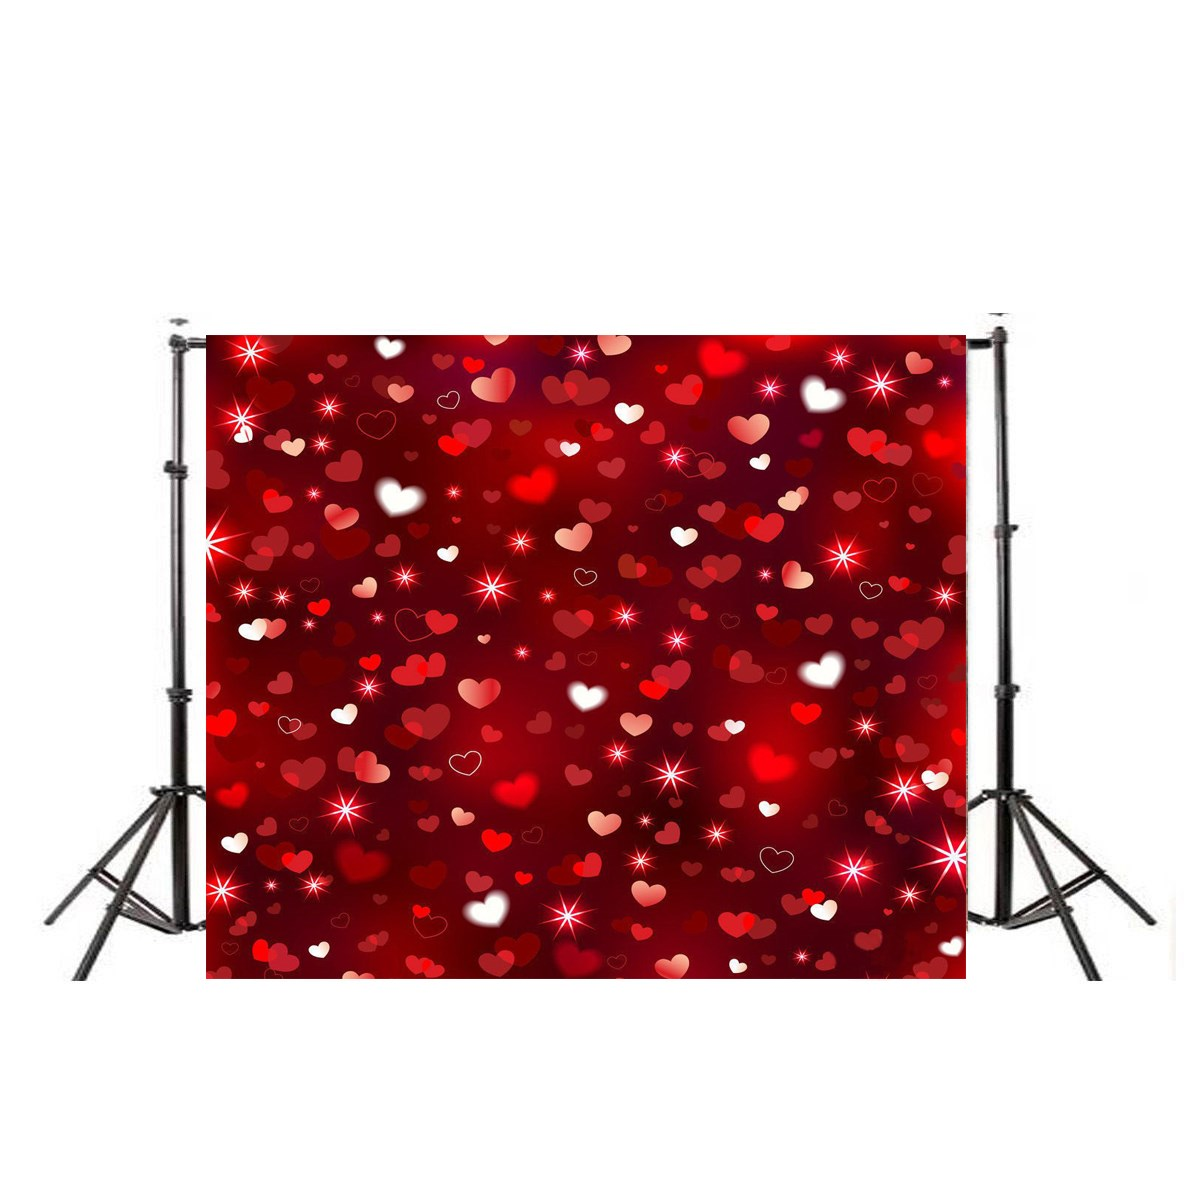 10X10FT Vinyl Love Heart Photography Backdrop Photo Background Studio Photo Props Valentine' Day Style huayi love photography backdrop scenery custom photo portrait studios background valentine s day backdrop xt4838